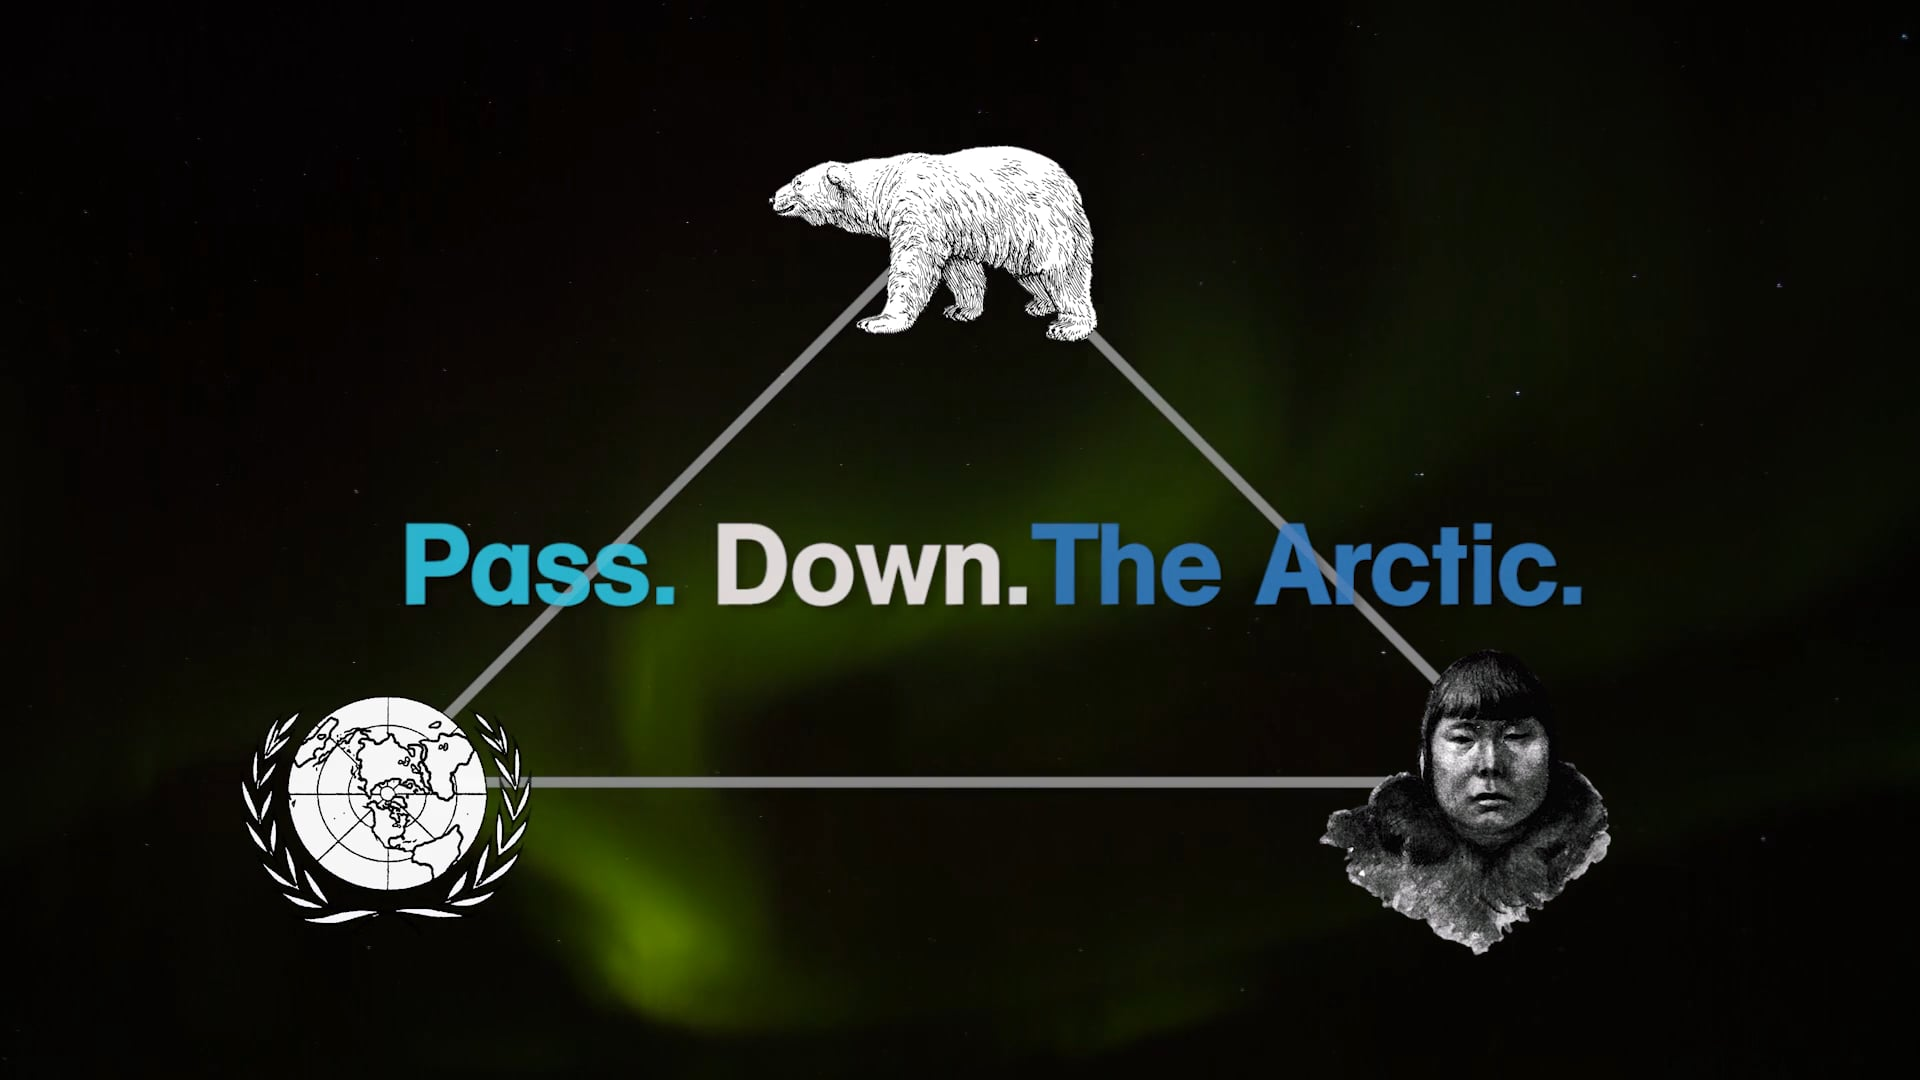 PASS. DOWN. THE ARCTIC